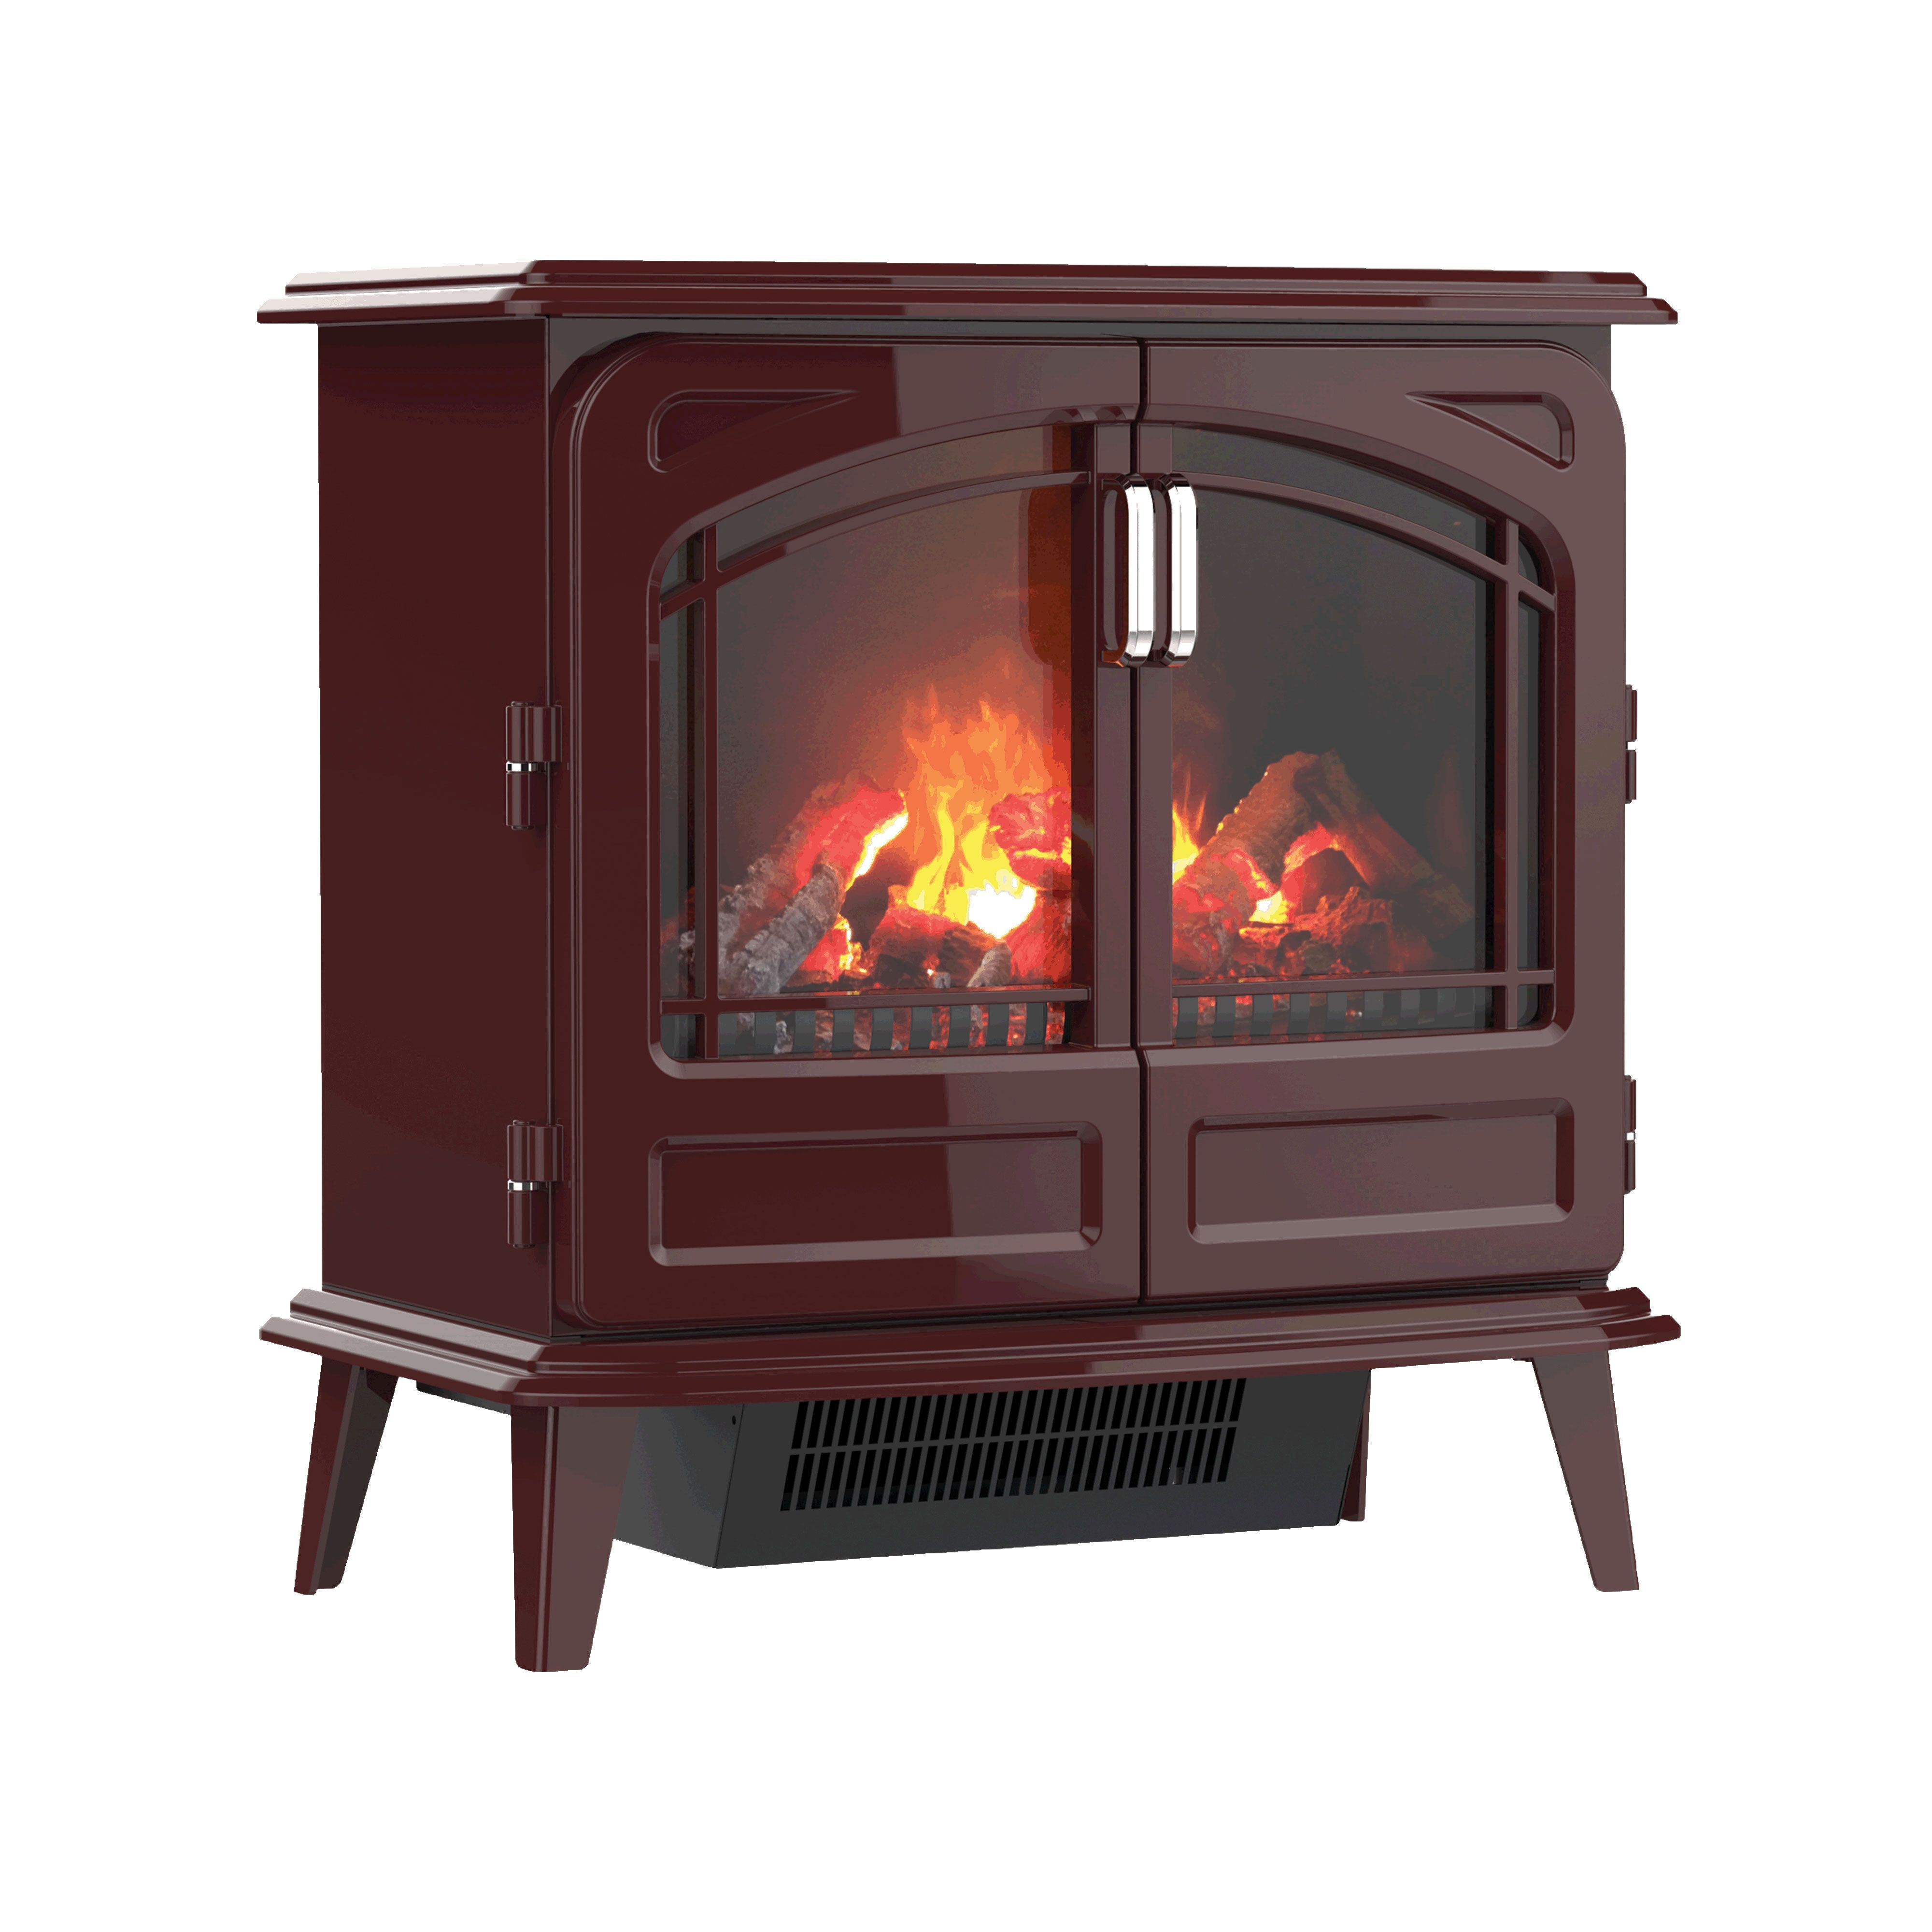 watch home space with hughes electric quartz heater star infrared fireplace dan twin